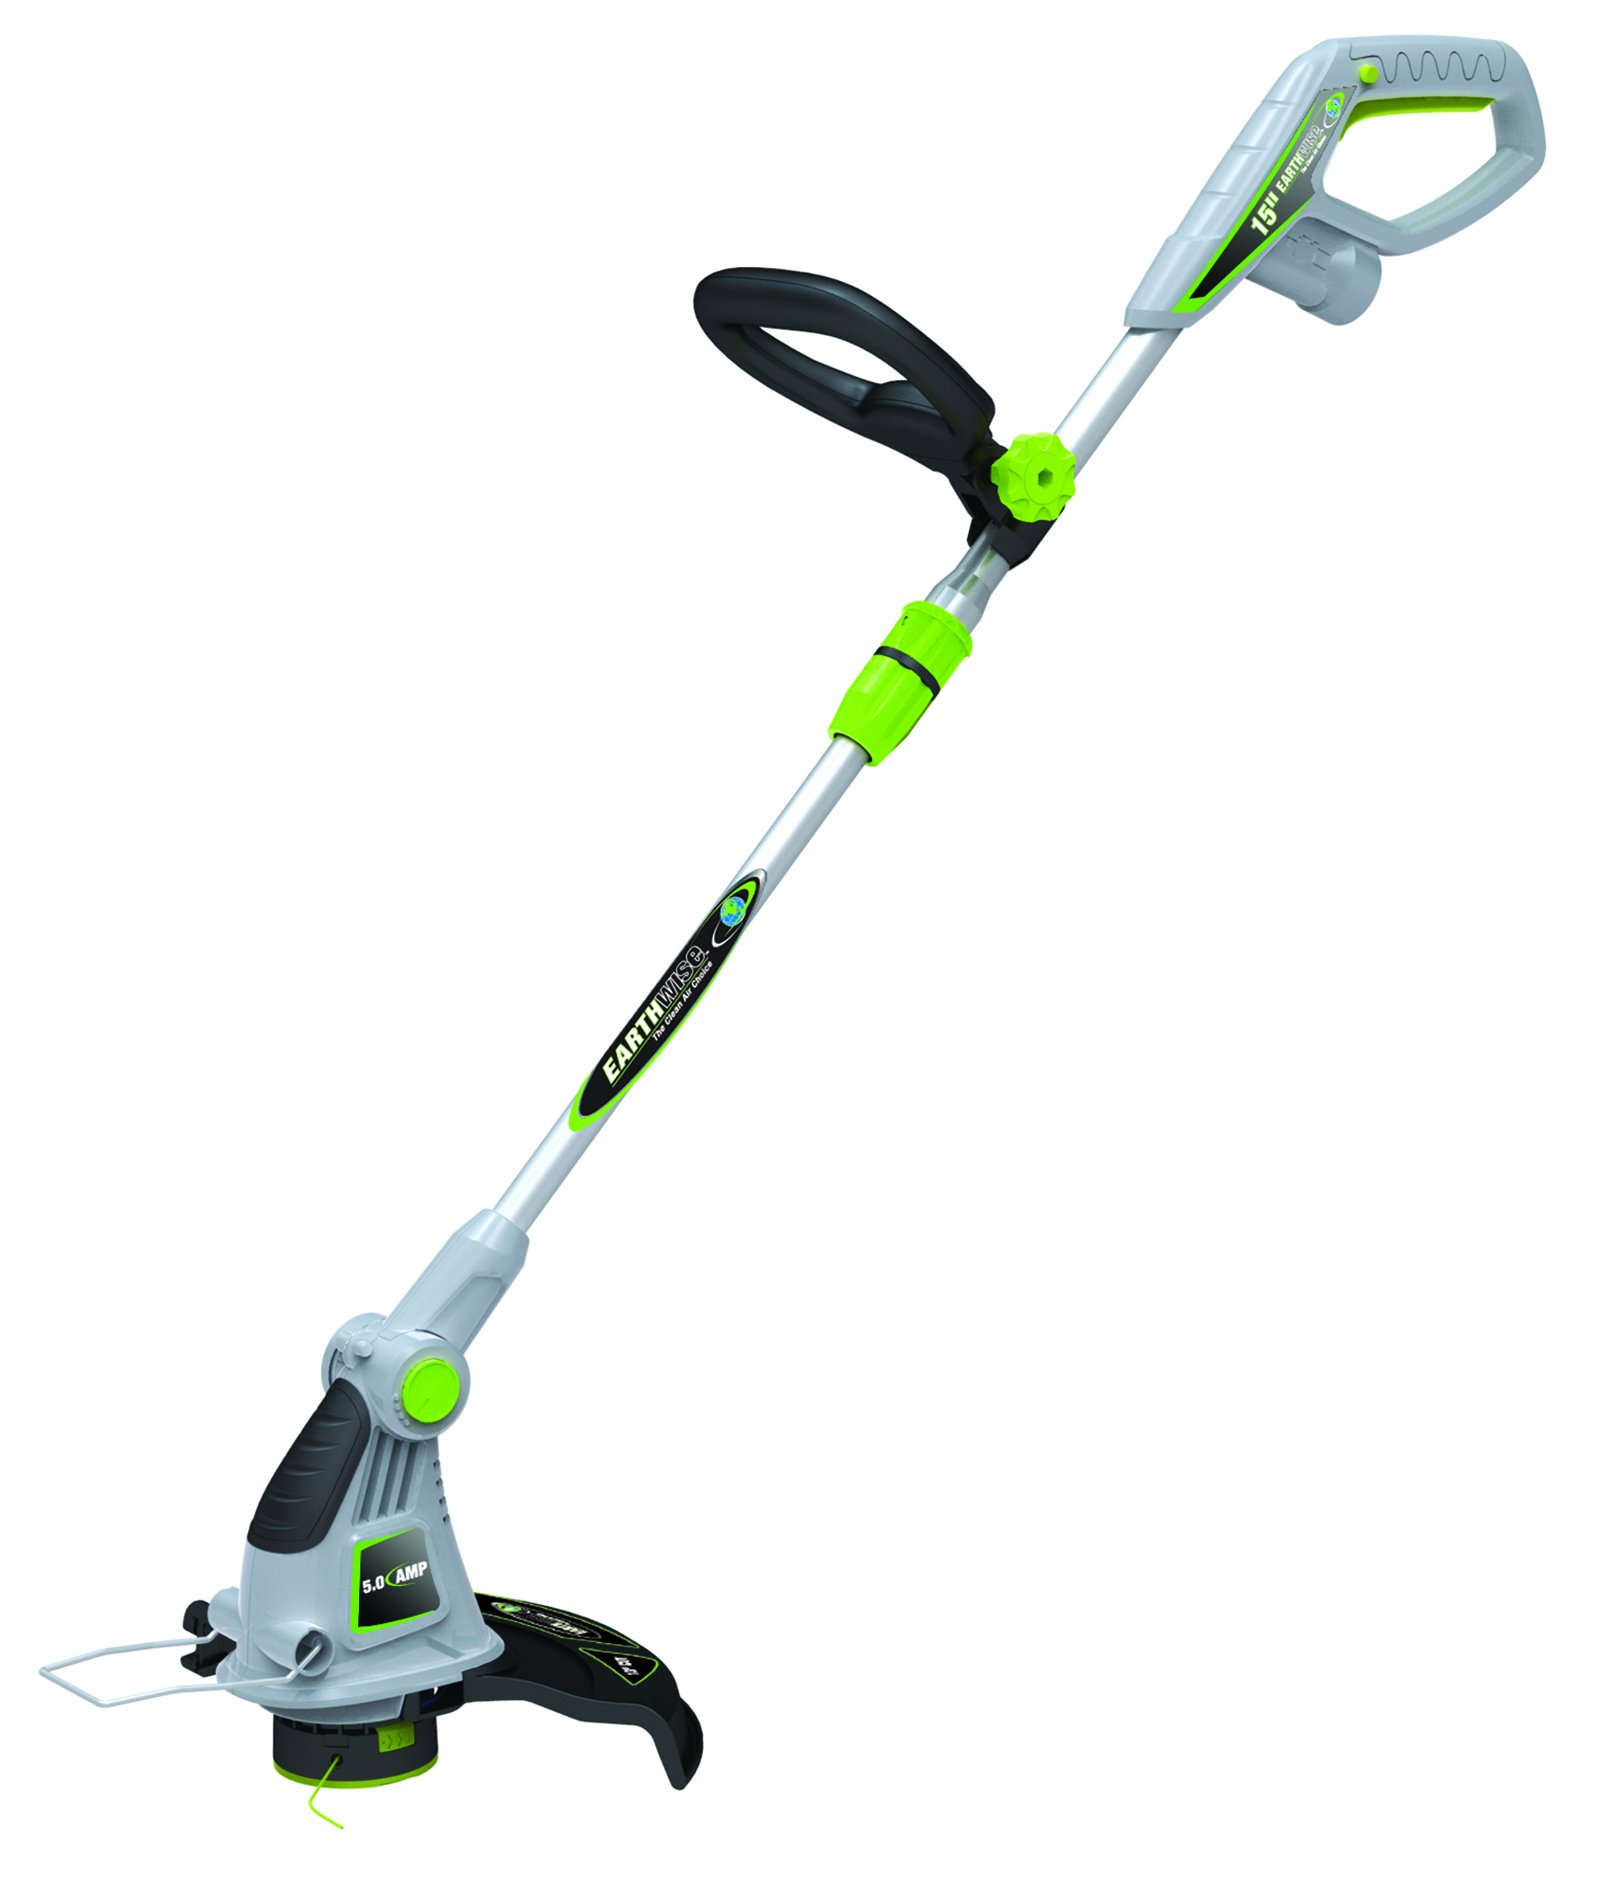 Earthwise ST00115 15-Inch 5-Amp Electric String Trimmer